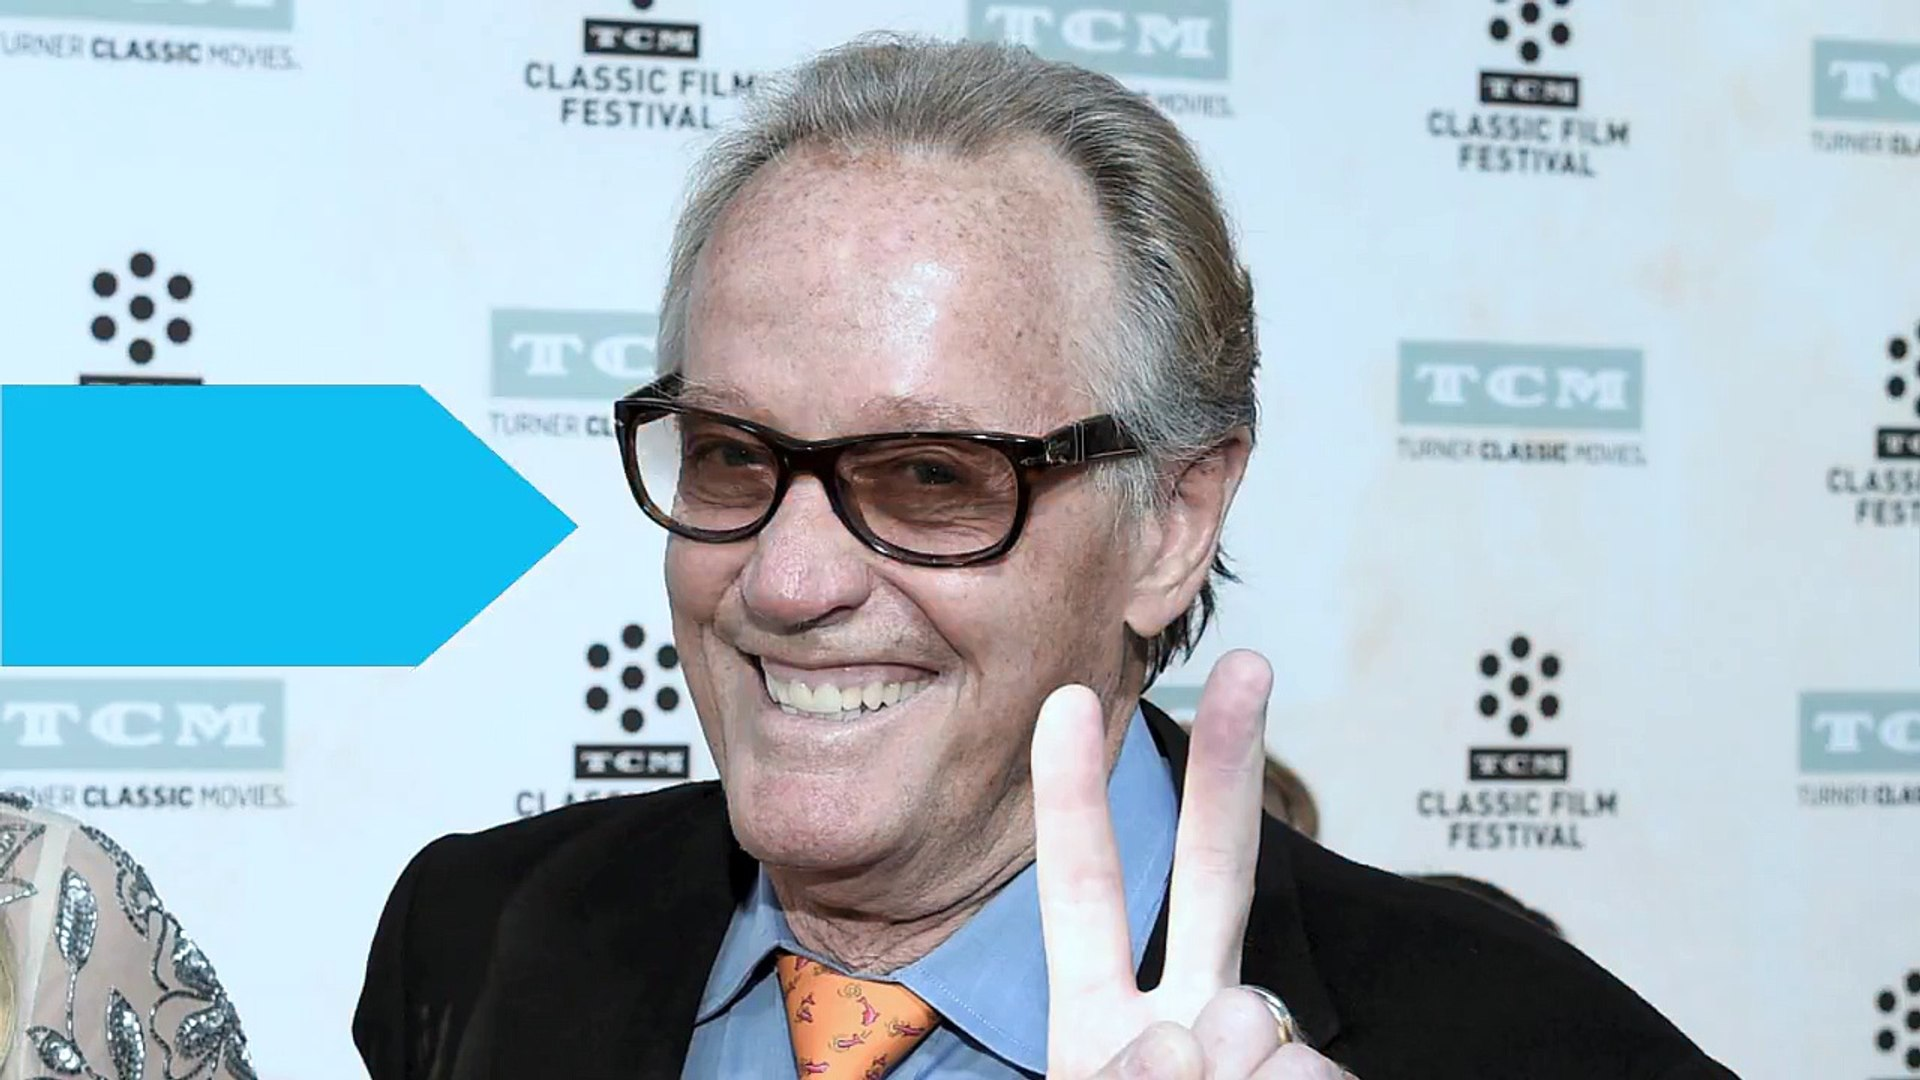 Peter Fonda Not Showing Much Road Wear for 75